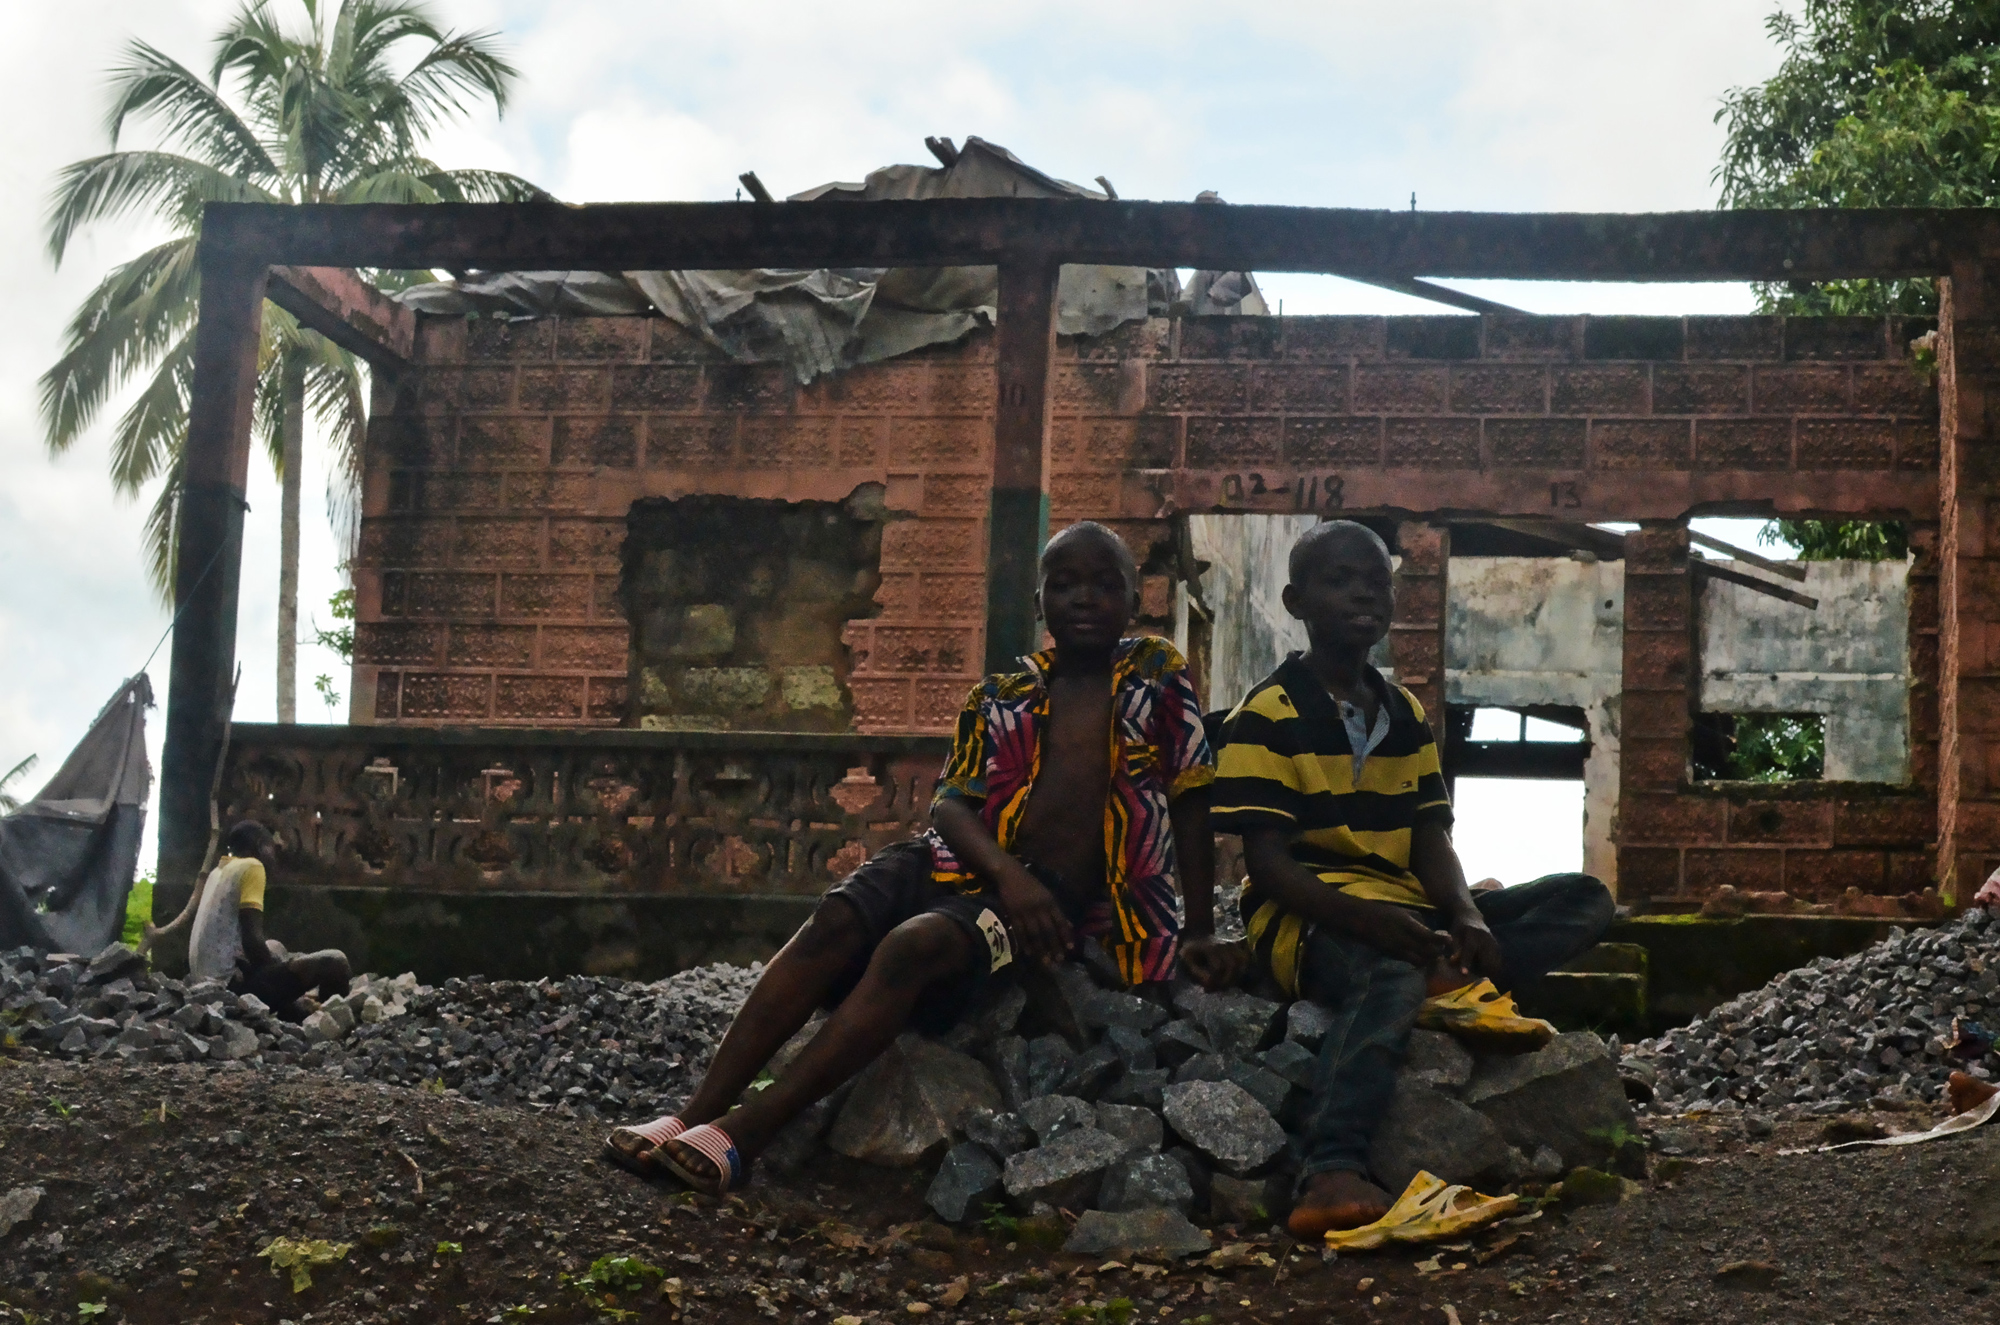 Koidu was a rebel stronghold for much of Sierra Leone's 11-year civil war, and the damage is still visible in many of its buildings.